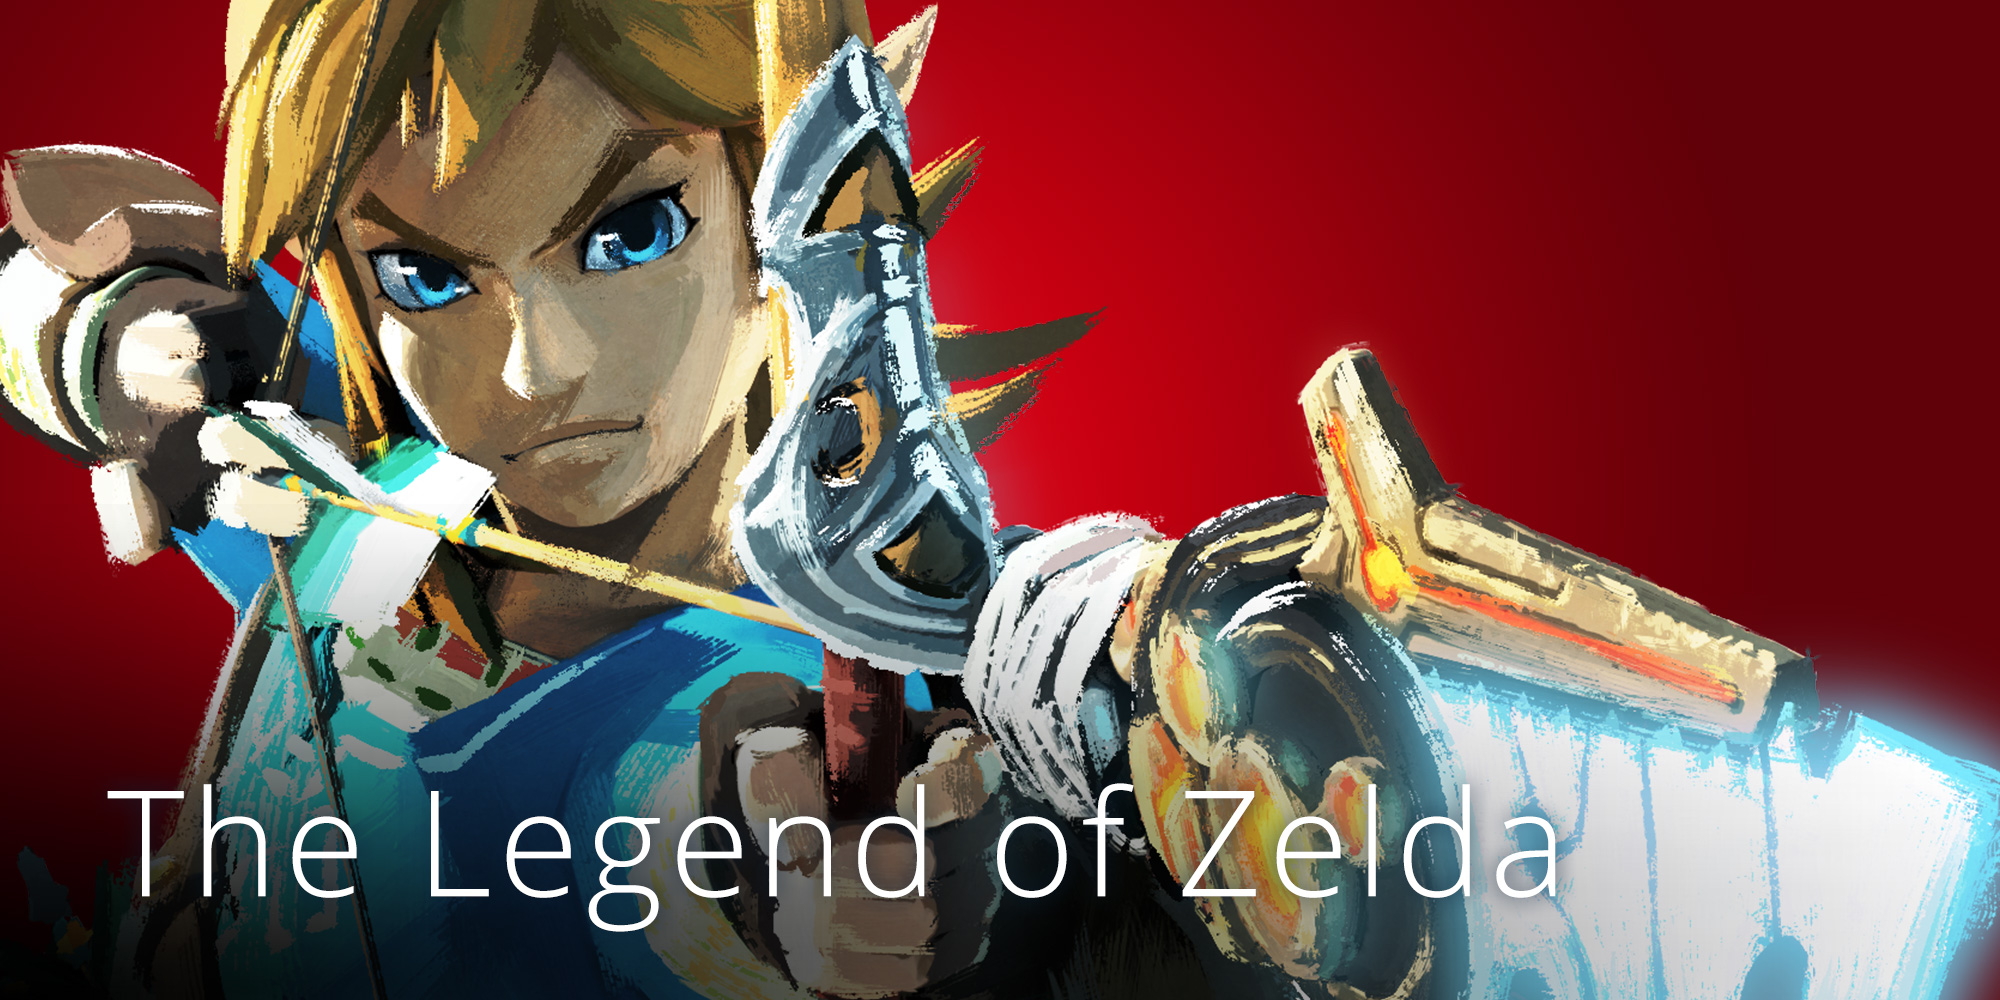 Articles The Legend of Zelda